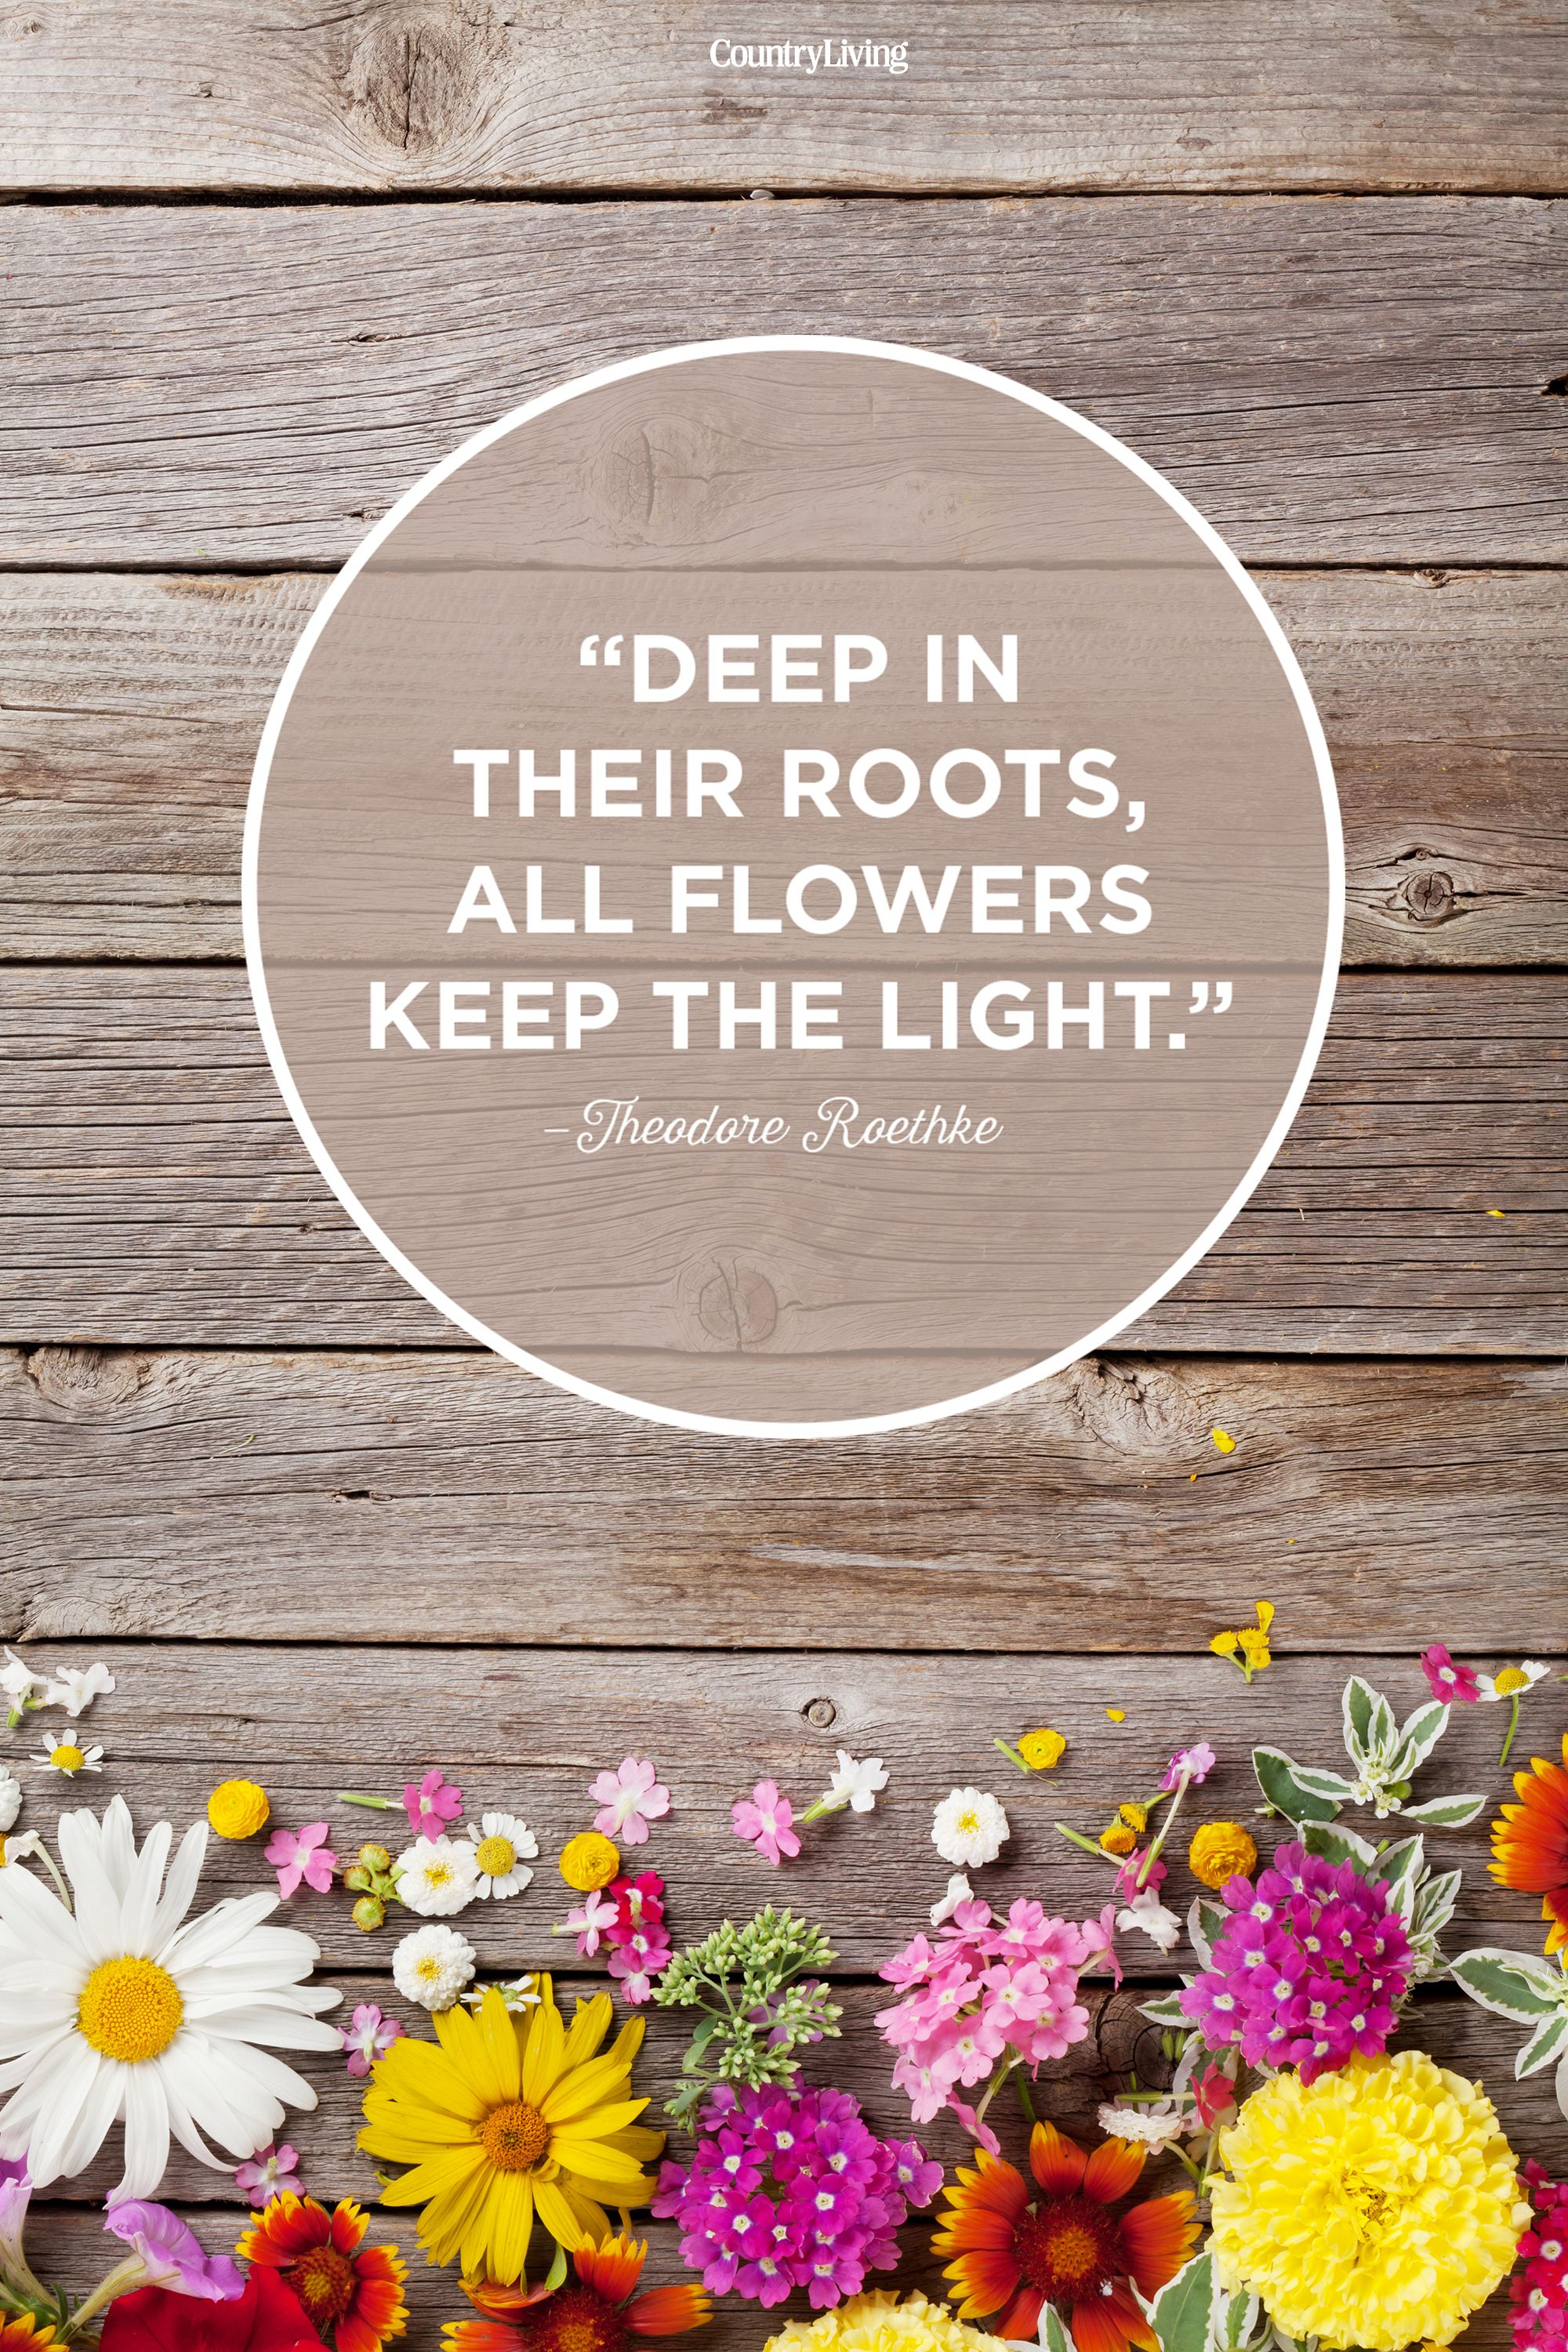 20 Happy Spring Quotes Motivational Sayings About Spring